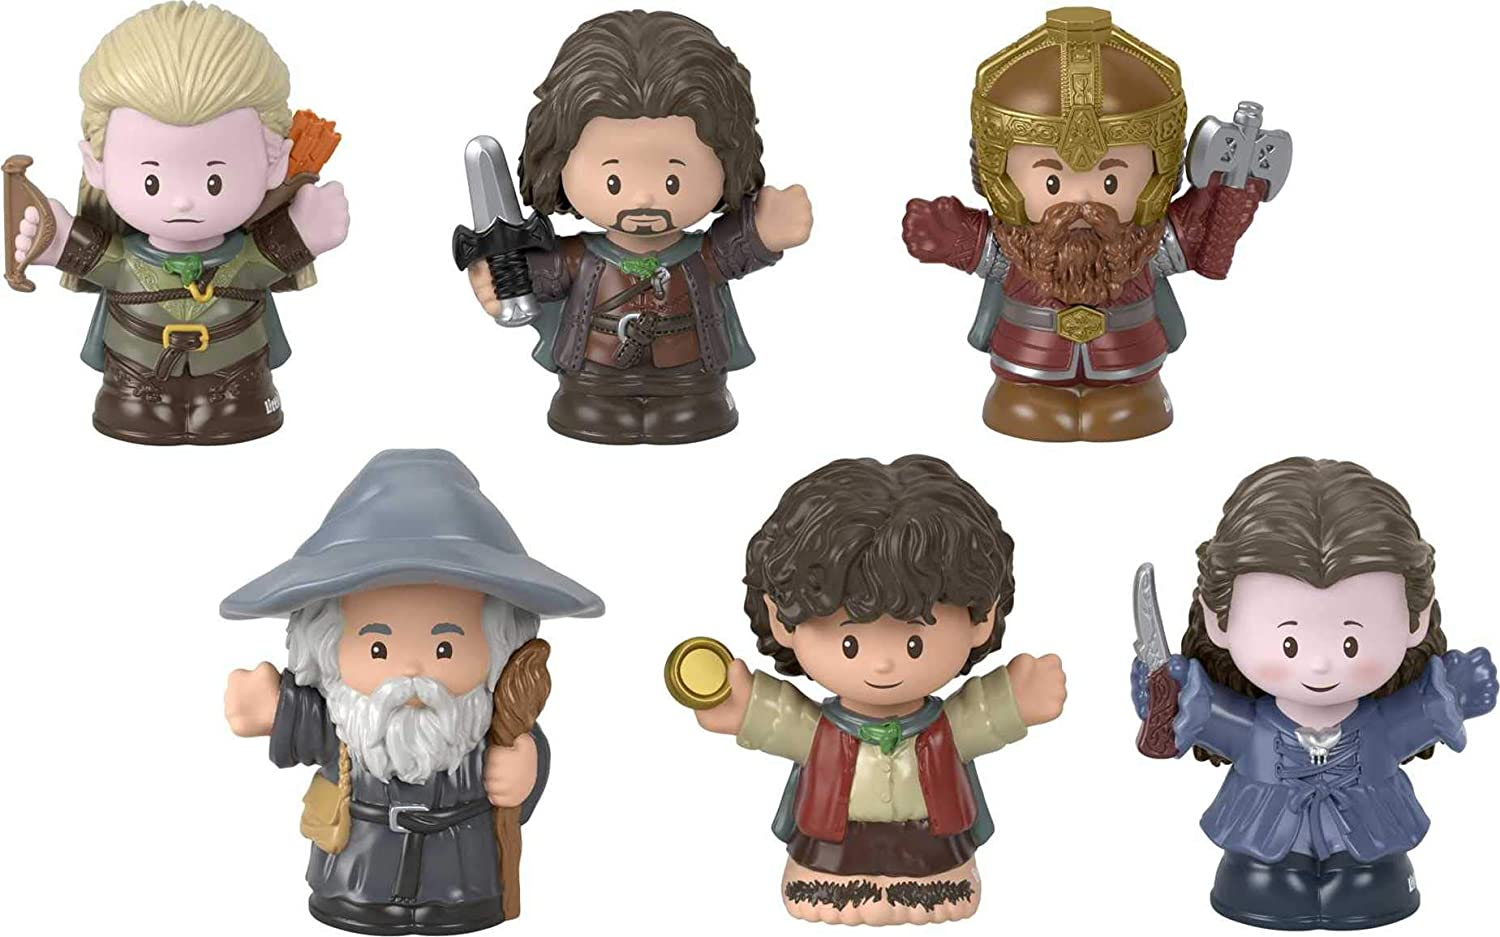 Fisher-Price Little People Collector Lord of The Rings Figure Set, 6 Character Figures from The Film in giftable Package for Tolkien Fans Ages 1-101 Years